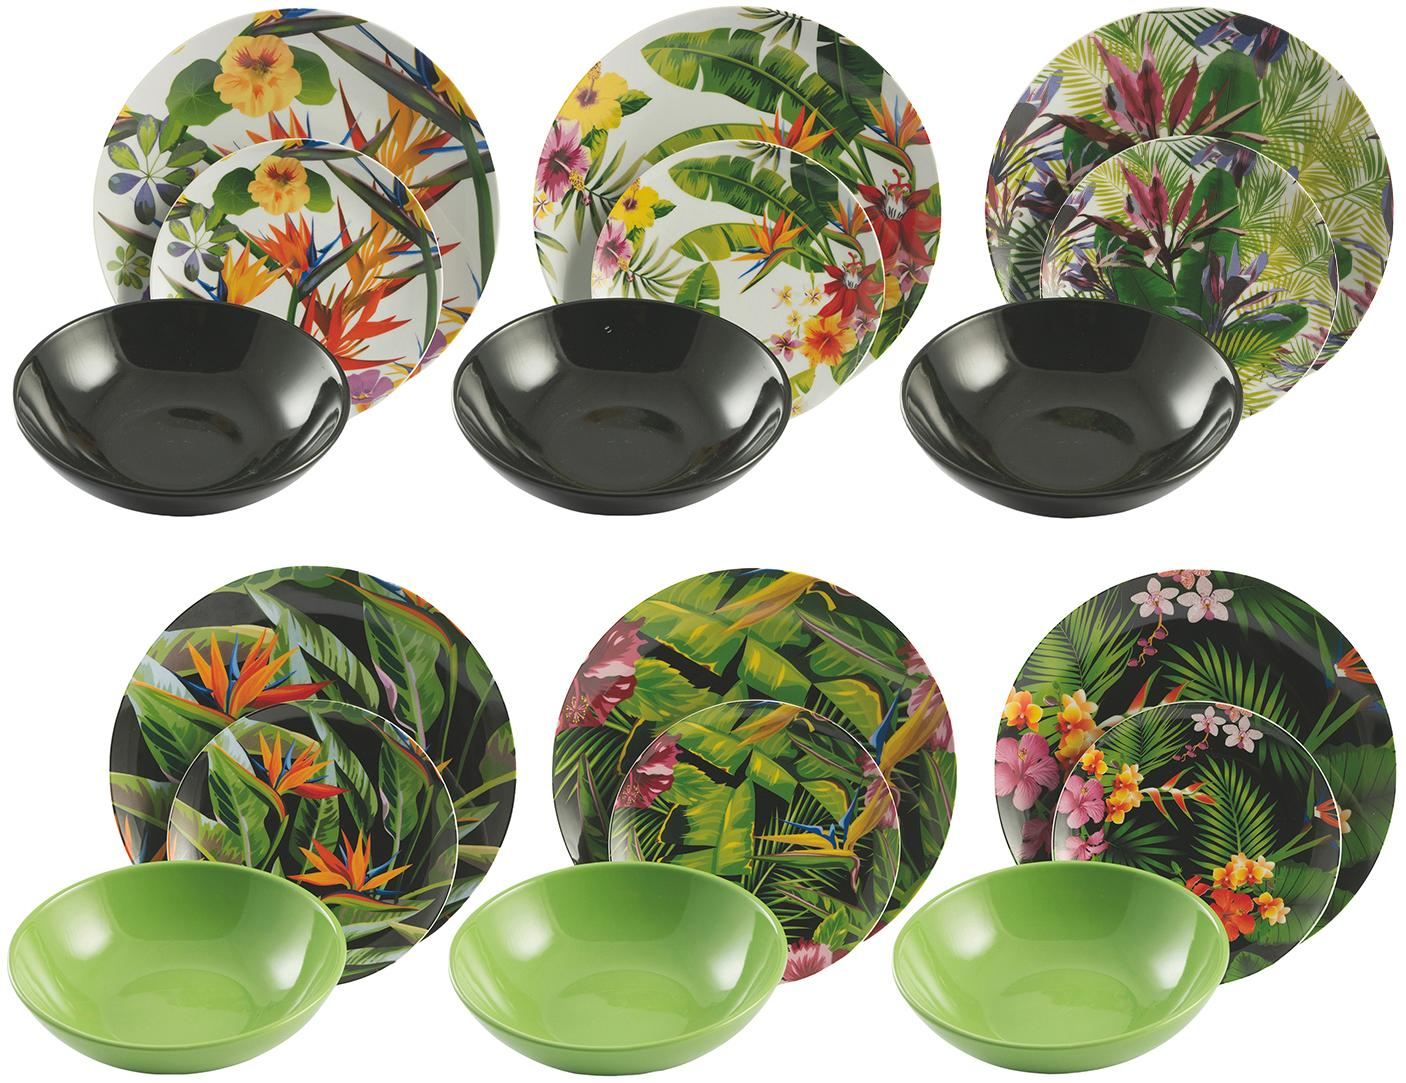 Serviesset Tropical Jungle, 6 personen (18-delig), Porselein, keramiek, Multicolour, Verschillende formaten